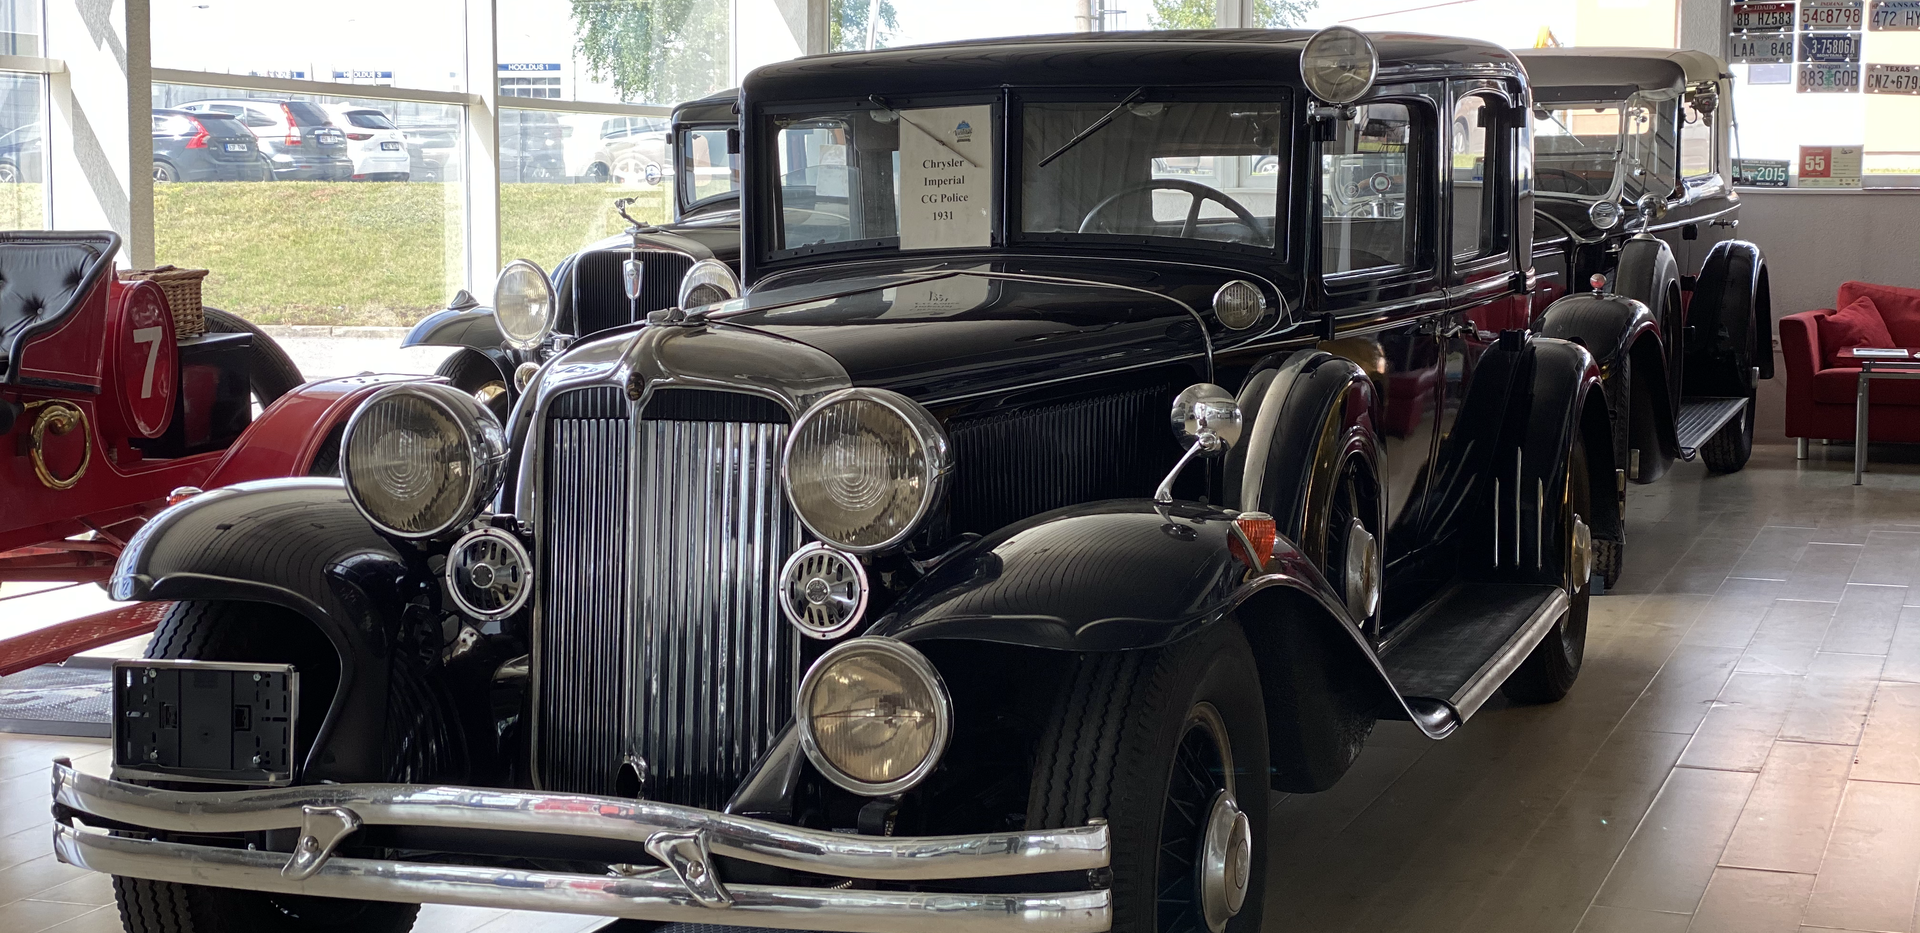 Chrysler Imperial CG 1931